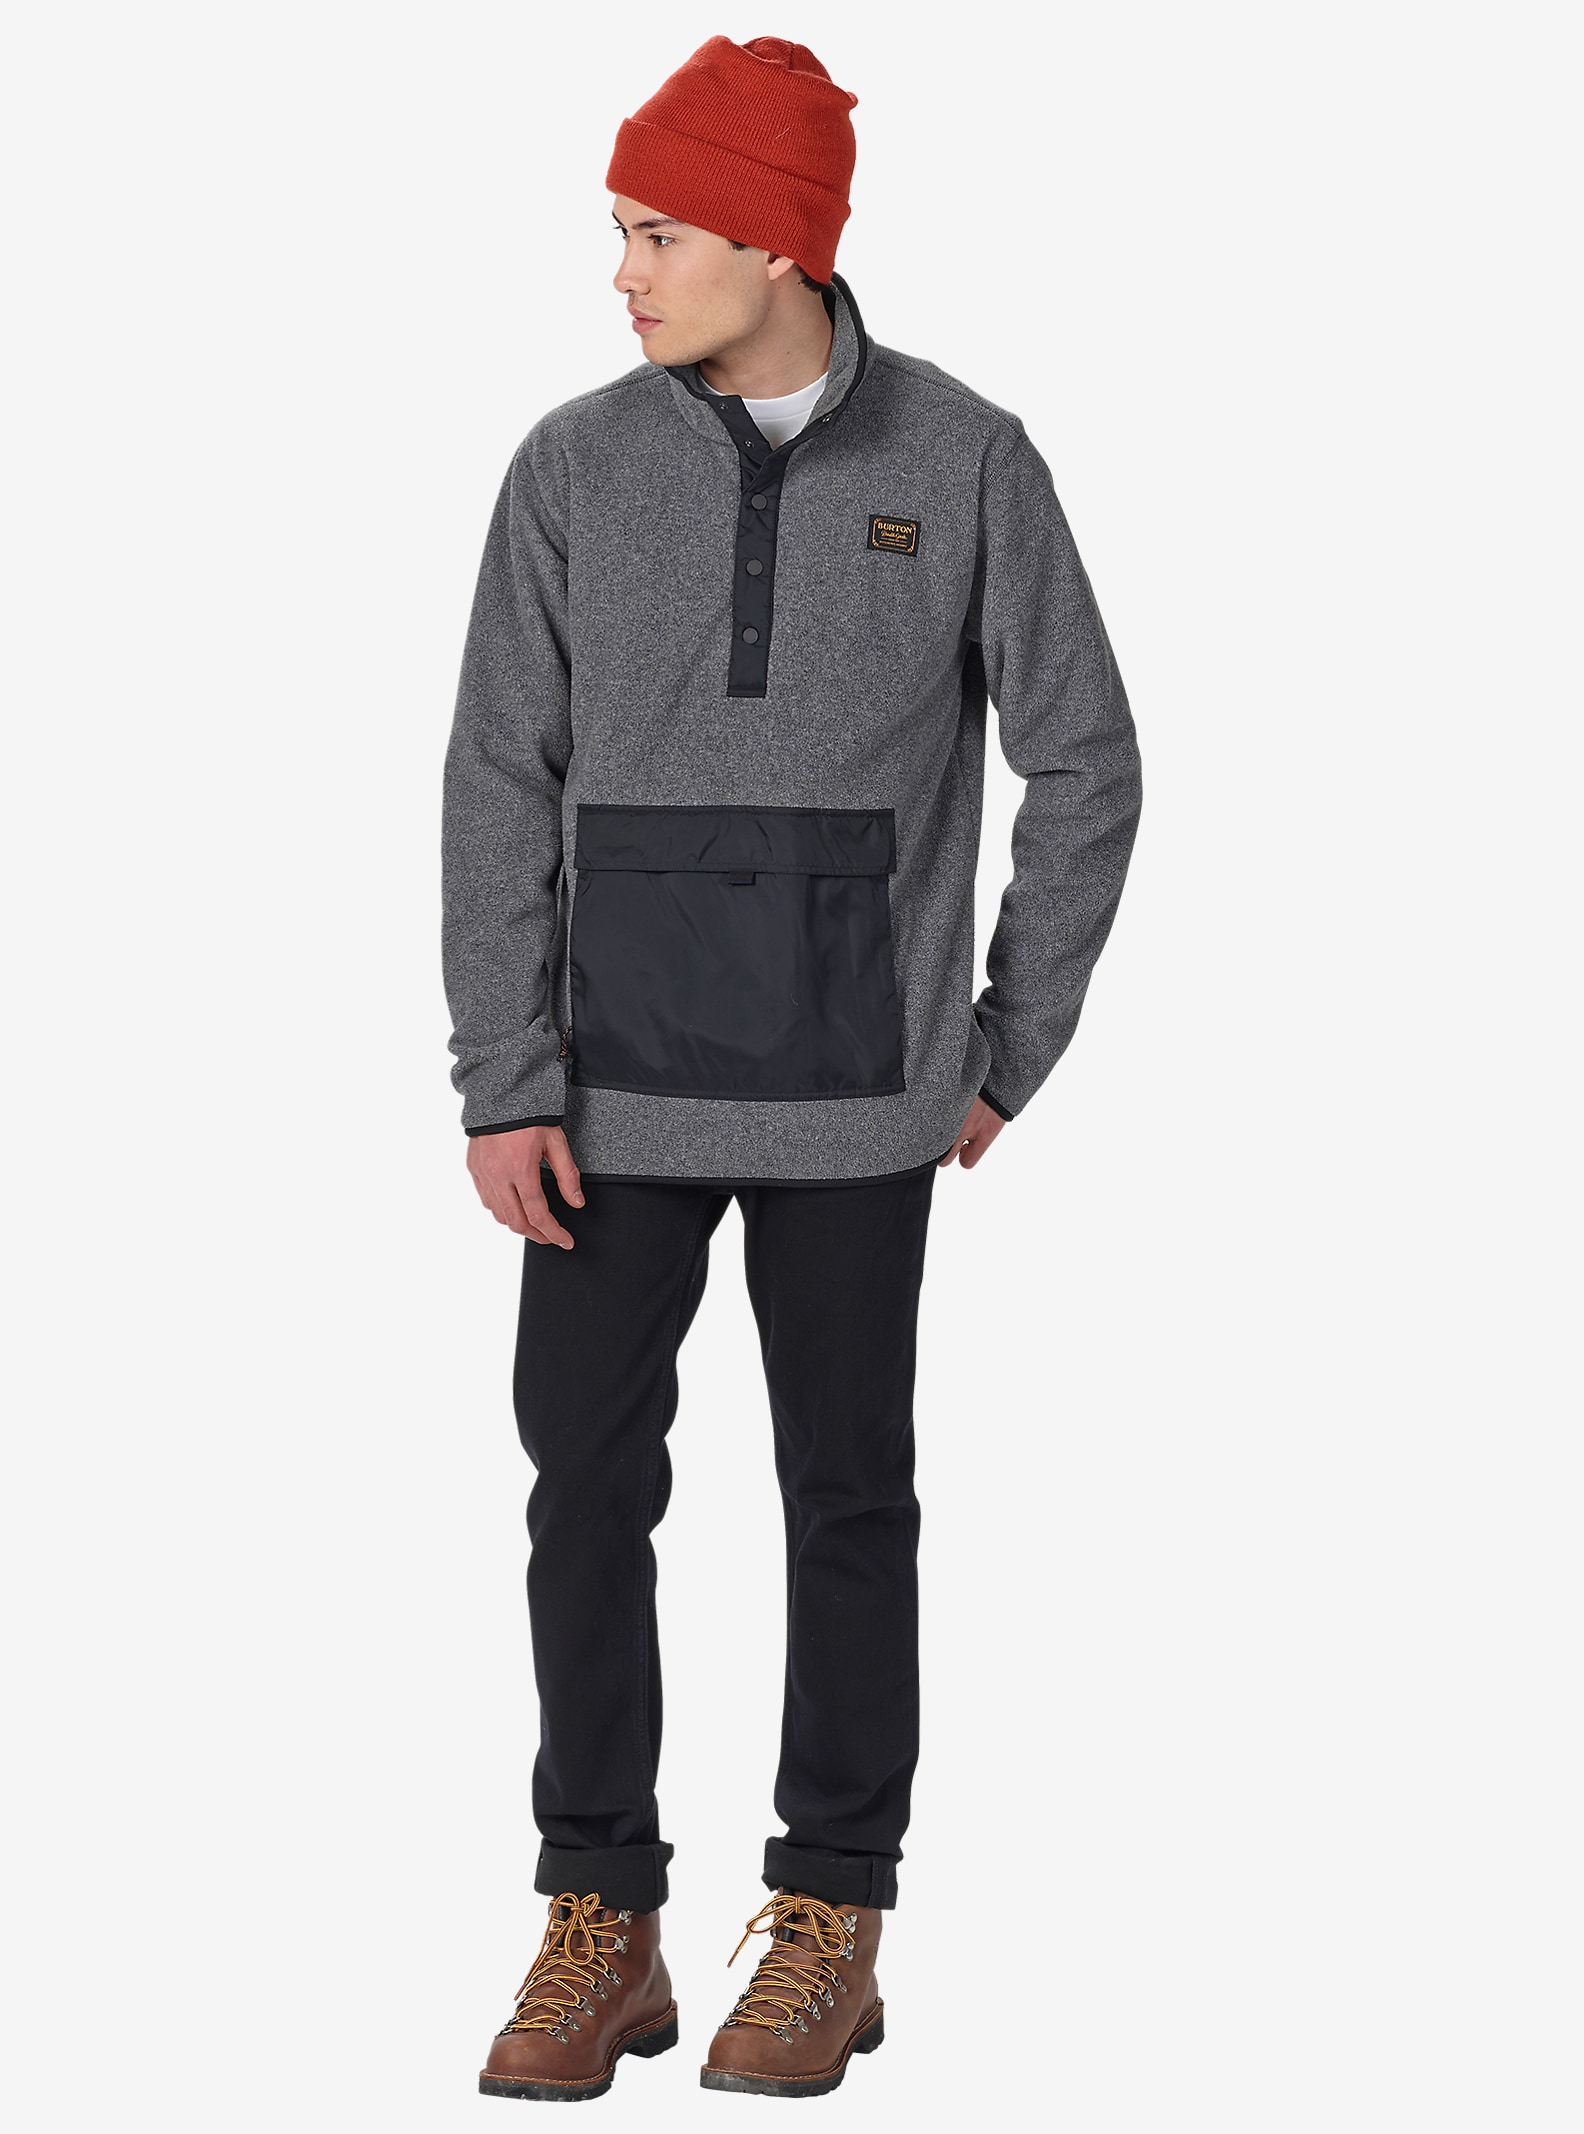 Burton Hearth Fleece Anorak shown in Dark Ash Heather